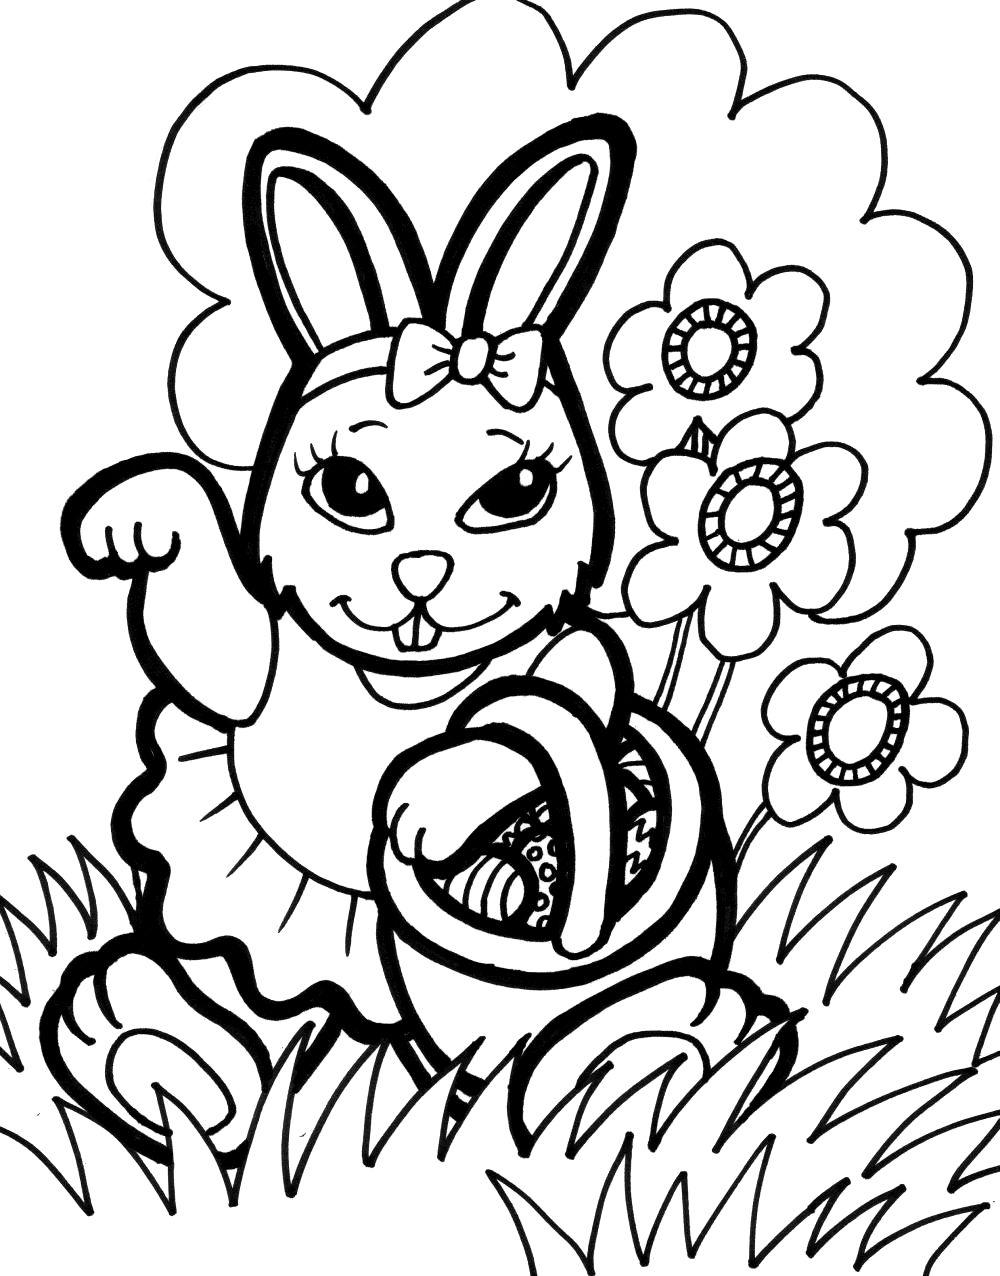 Rabbit coloring pages online - Free Bunny Coloring Pages Printable